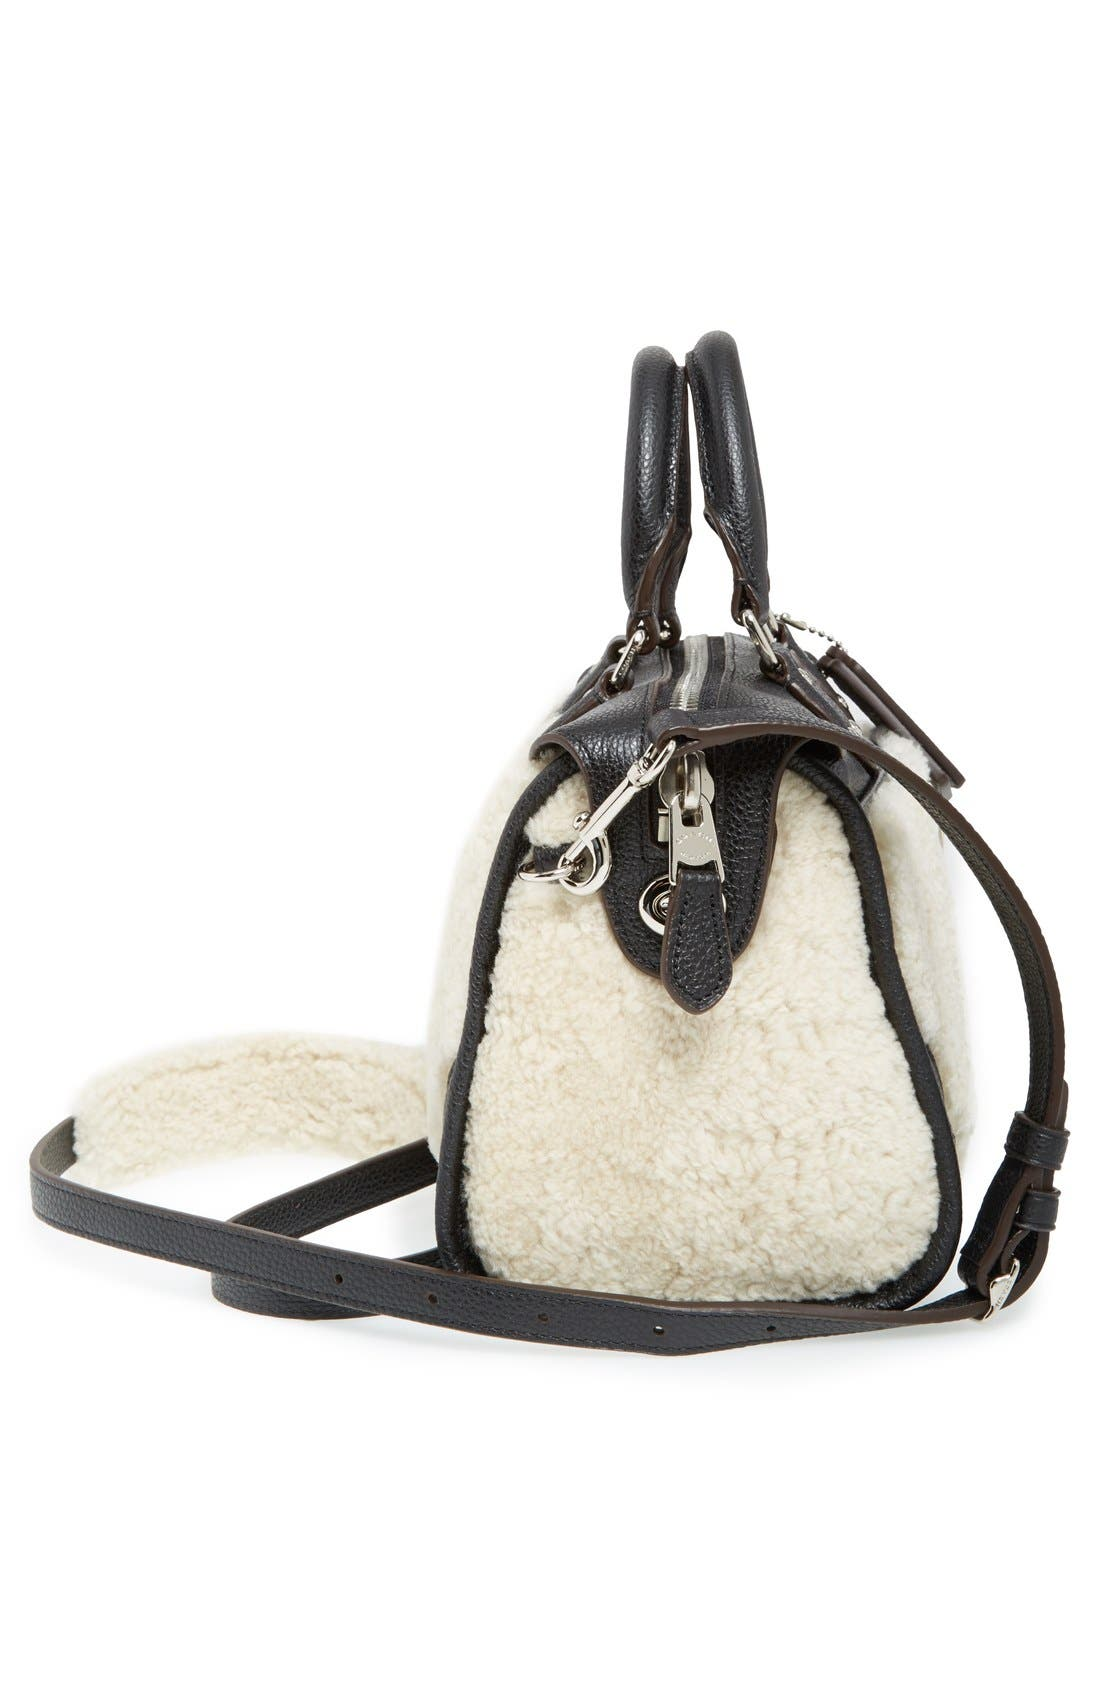 COACH,                             'Rhyder 24' Genuine Shearling & Leather Satchel,                             Alternate thumbnail 6, color,                             900